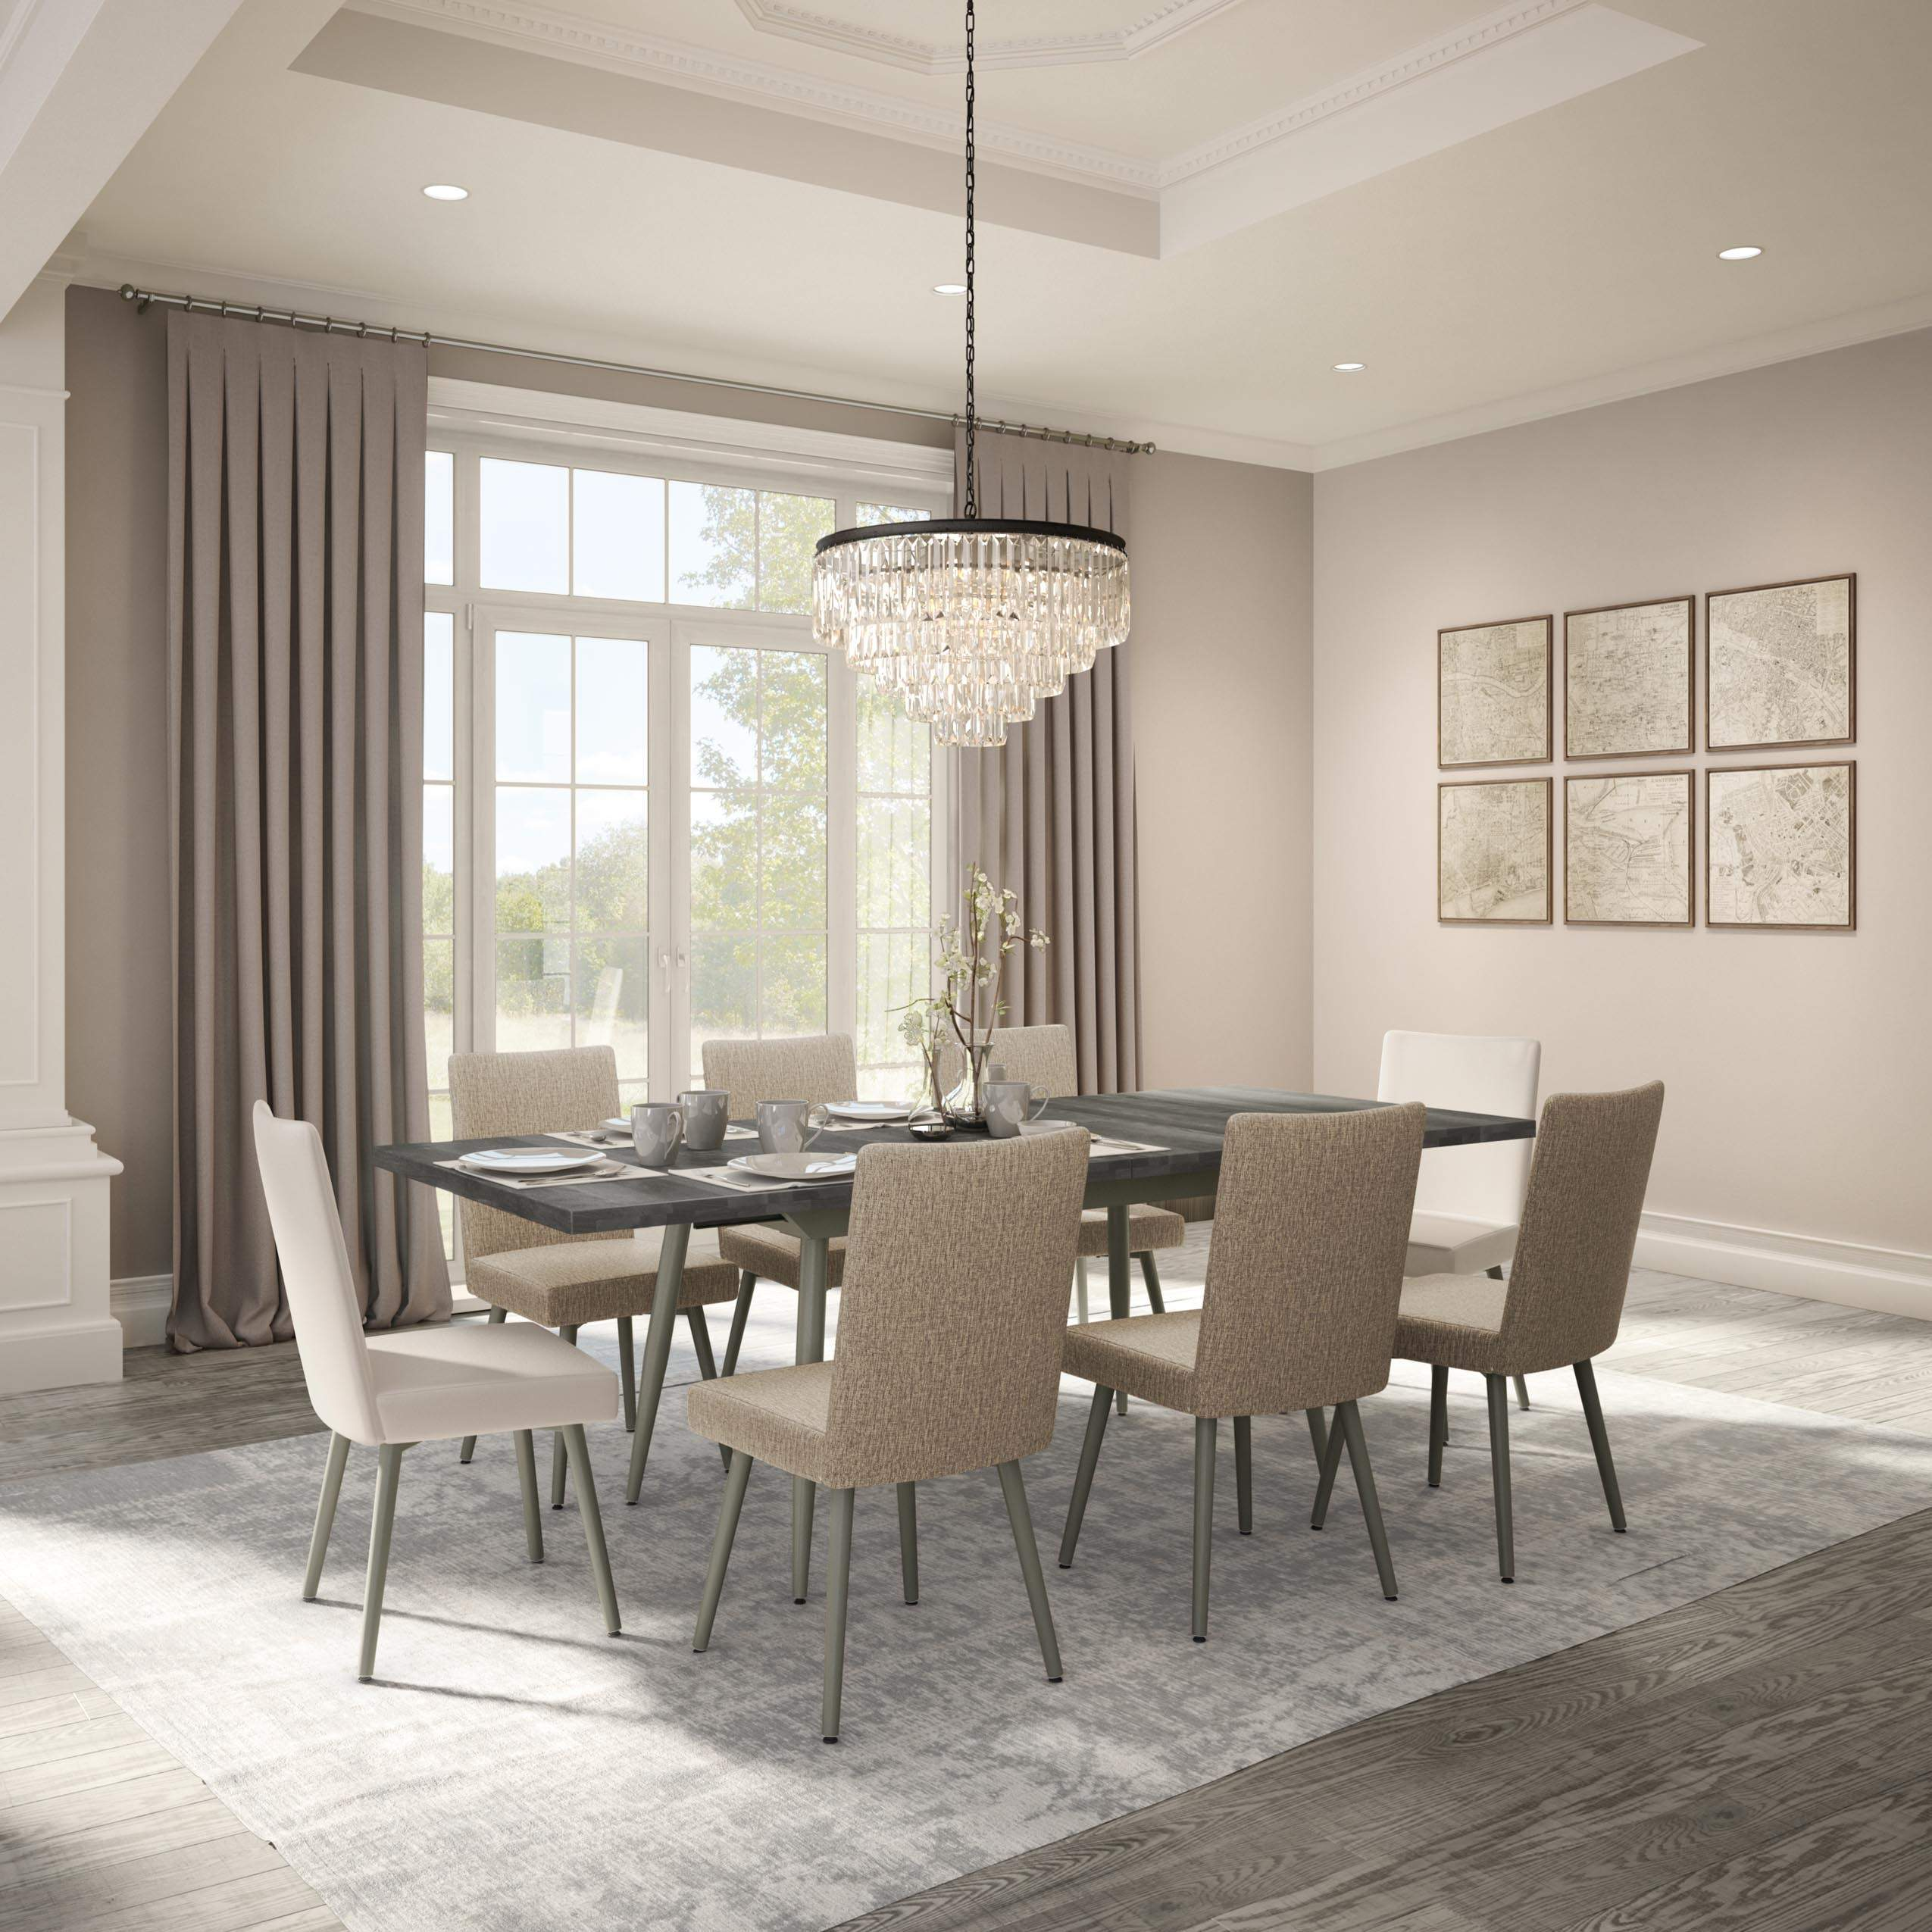 Webber Luxury Dining Room Furniture   Tables U0026 Chairs In Long Island